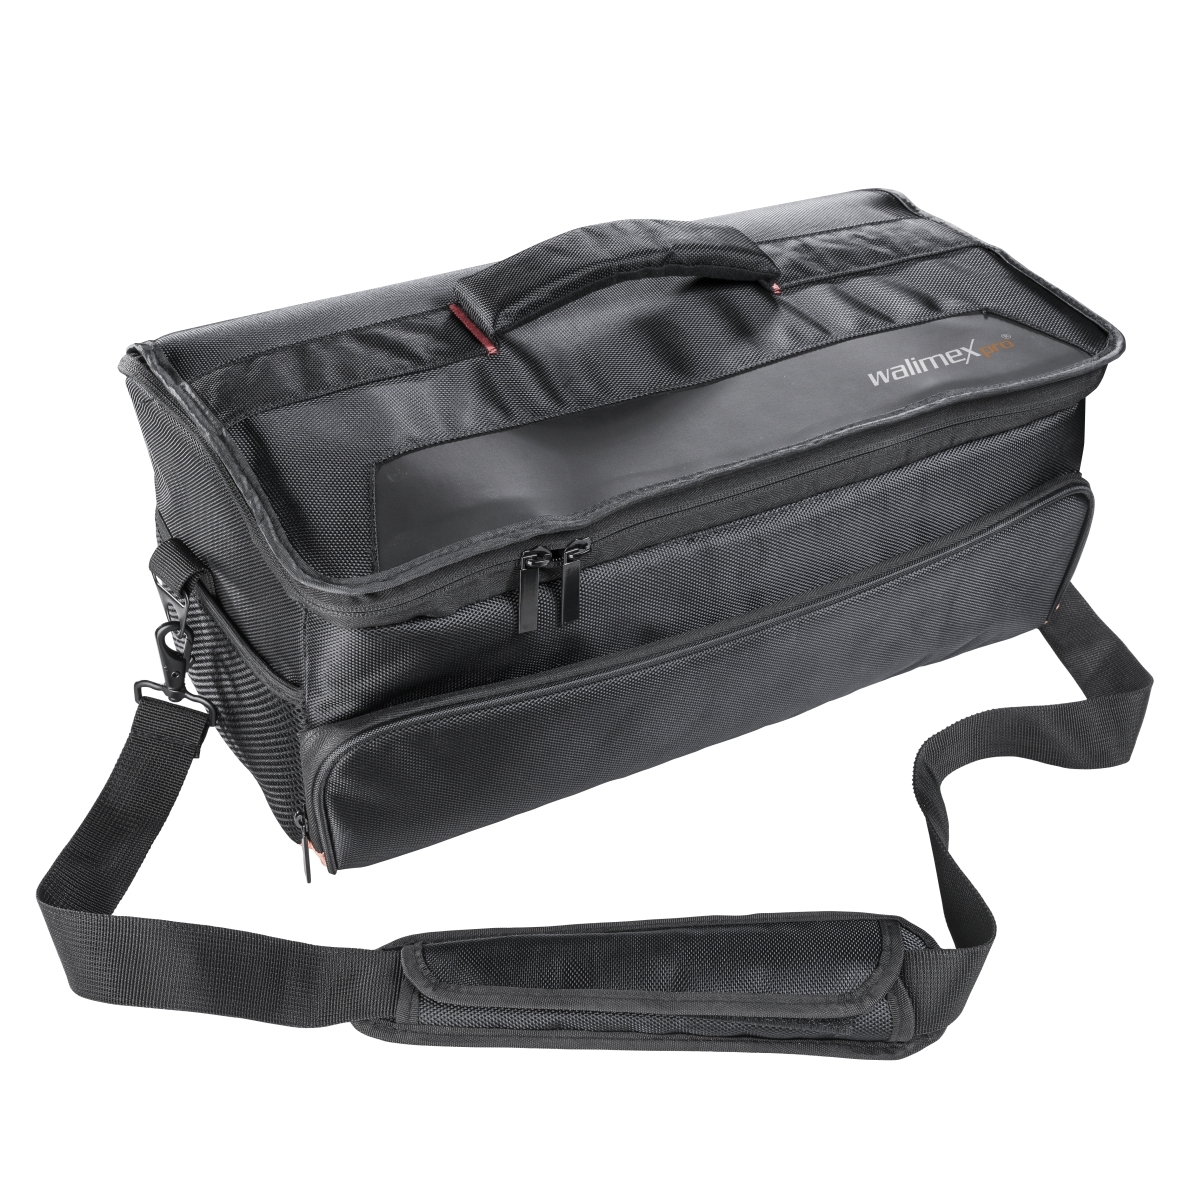 Walimex pro Studio Bag for Mover